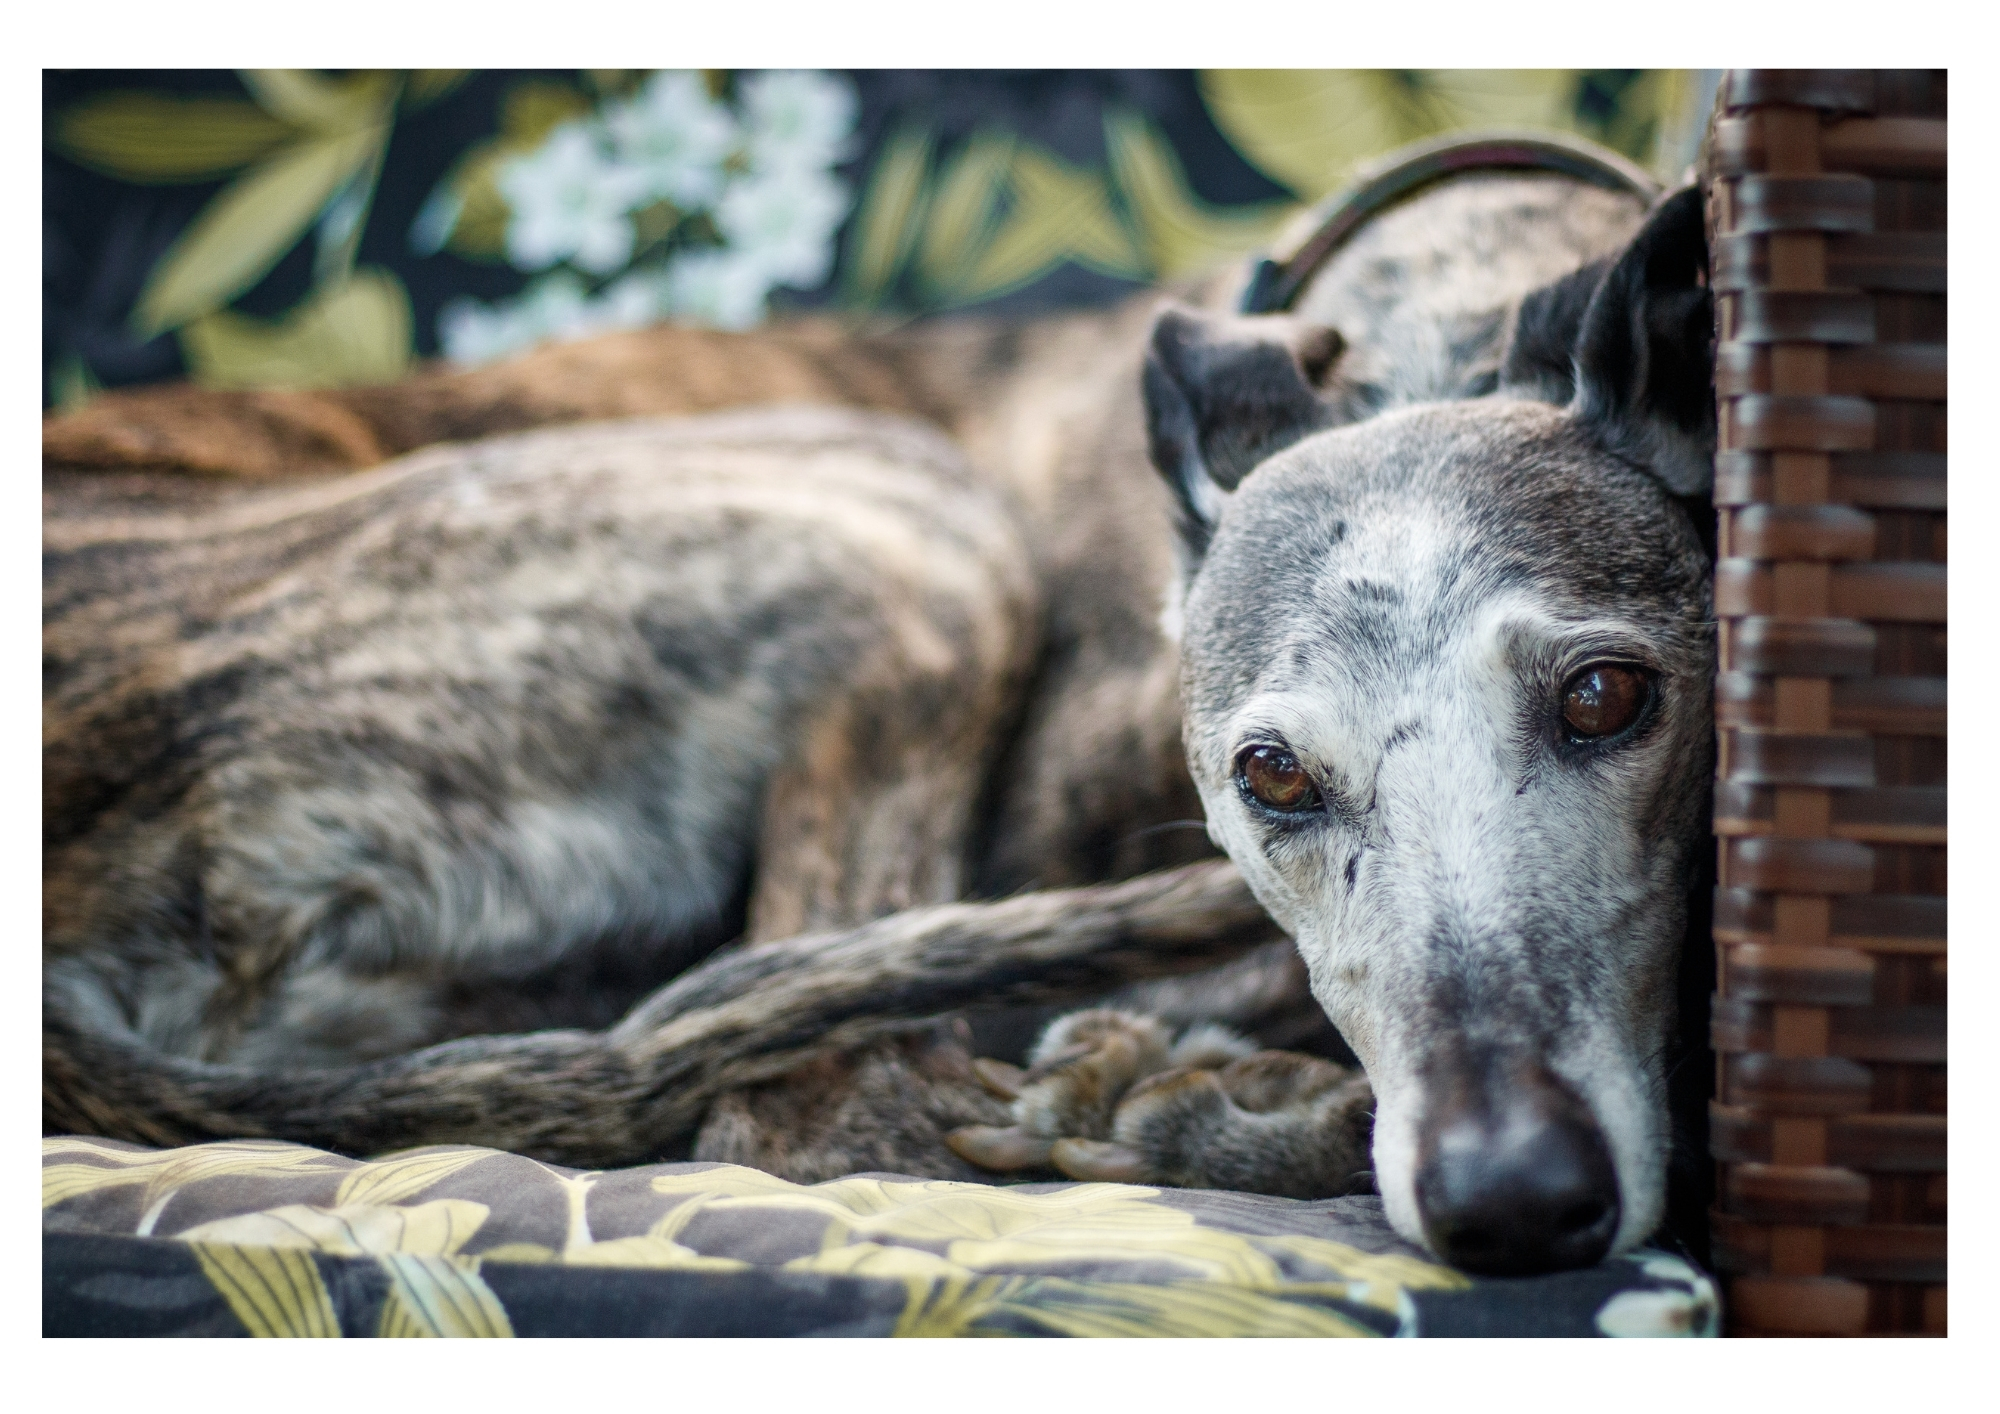 Why Does My Greyhound Stare At Me? (The Most Common Reasons)